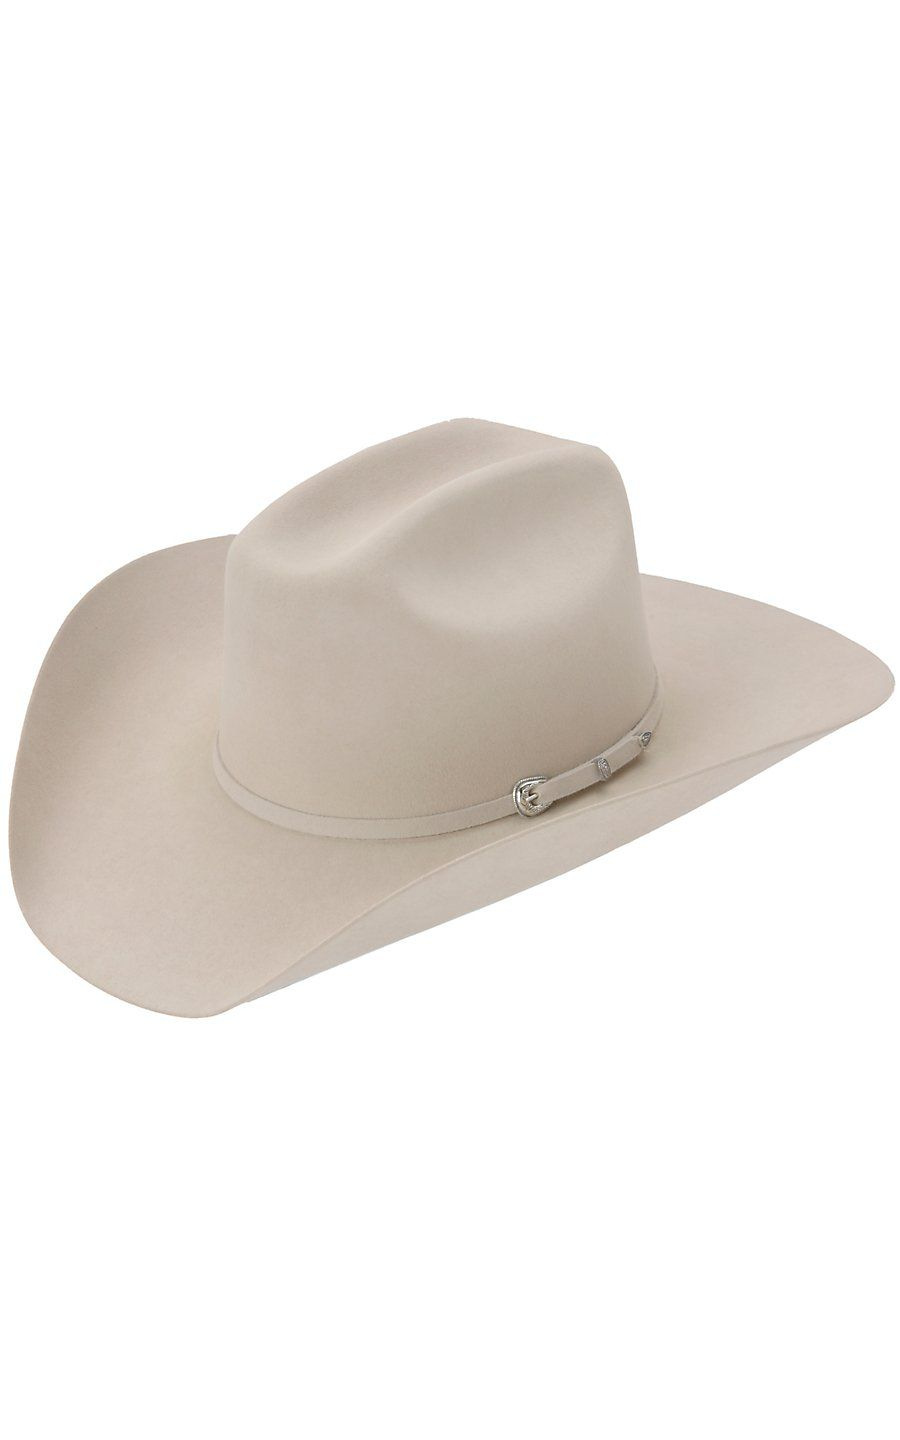 Cavender s® 5X Ranch Collection Silverbelly Felt Cowboy Hat  b11f990daf9b